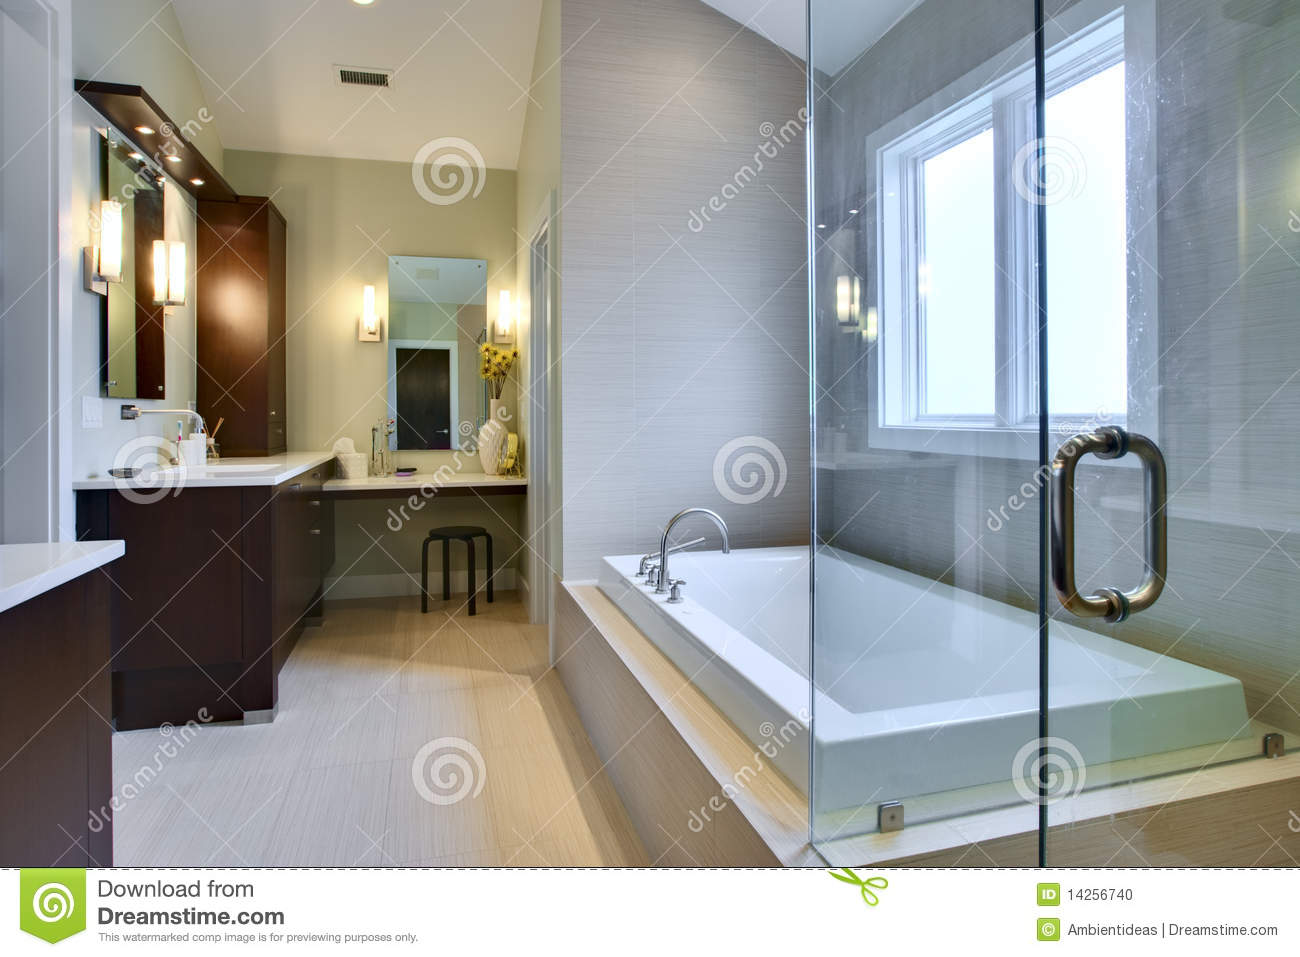 Tinas De Baño Grandes:Bathroom Large Bath Tubs and Showers Images